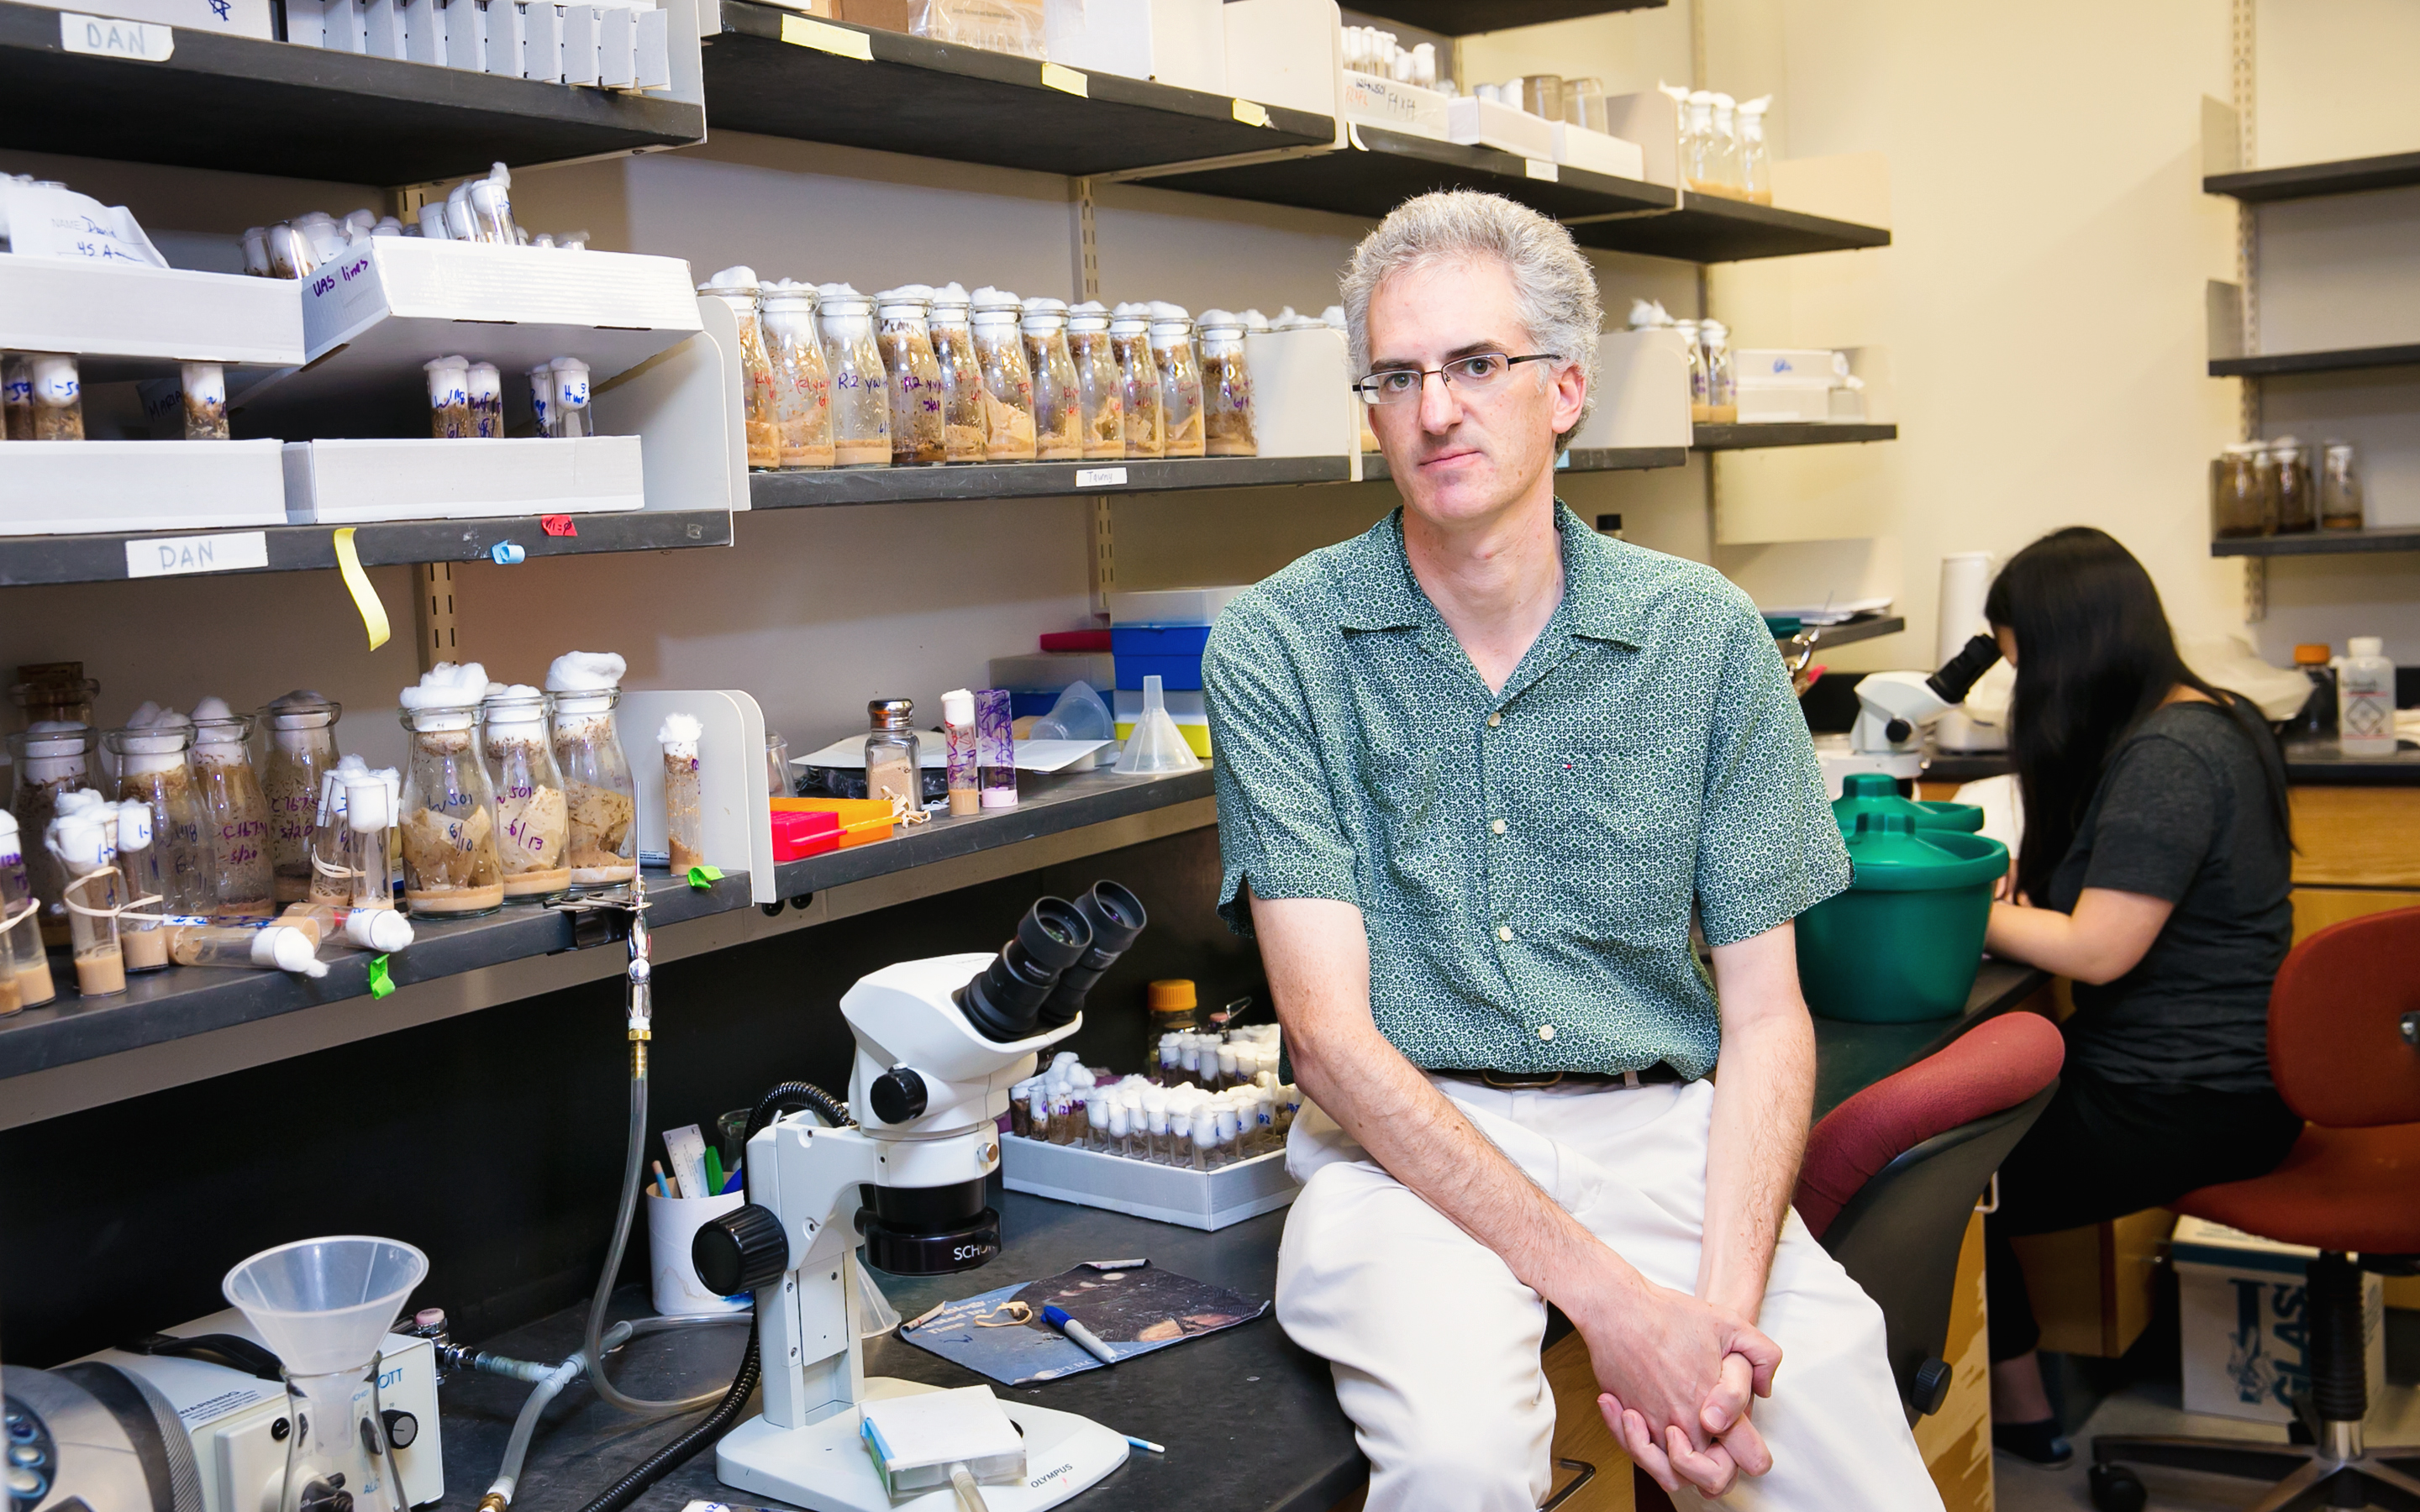 Daniel Barbash's lab works on hybrid species of Drosophila to understand how genetic mutations work.